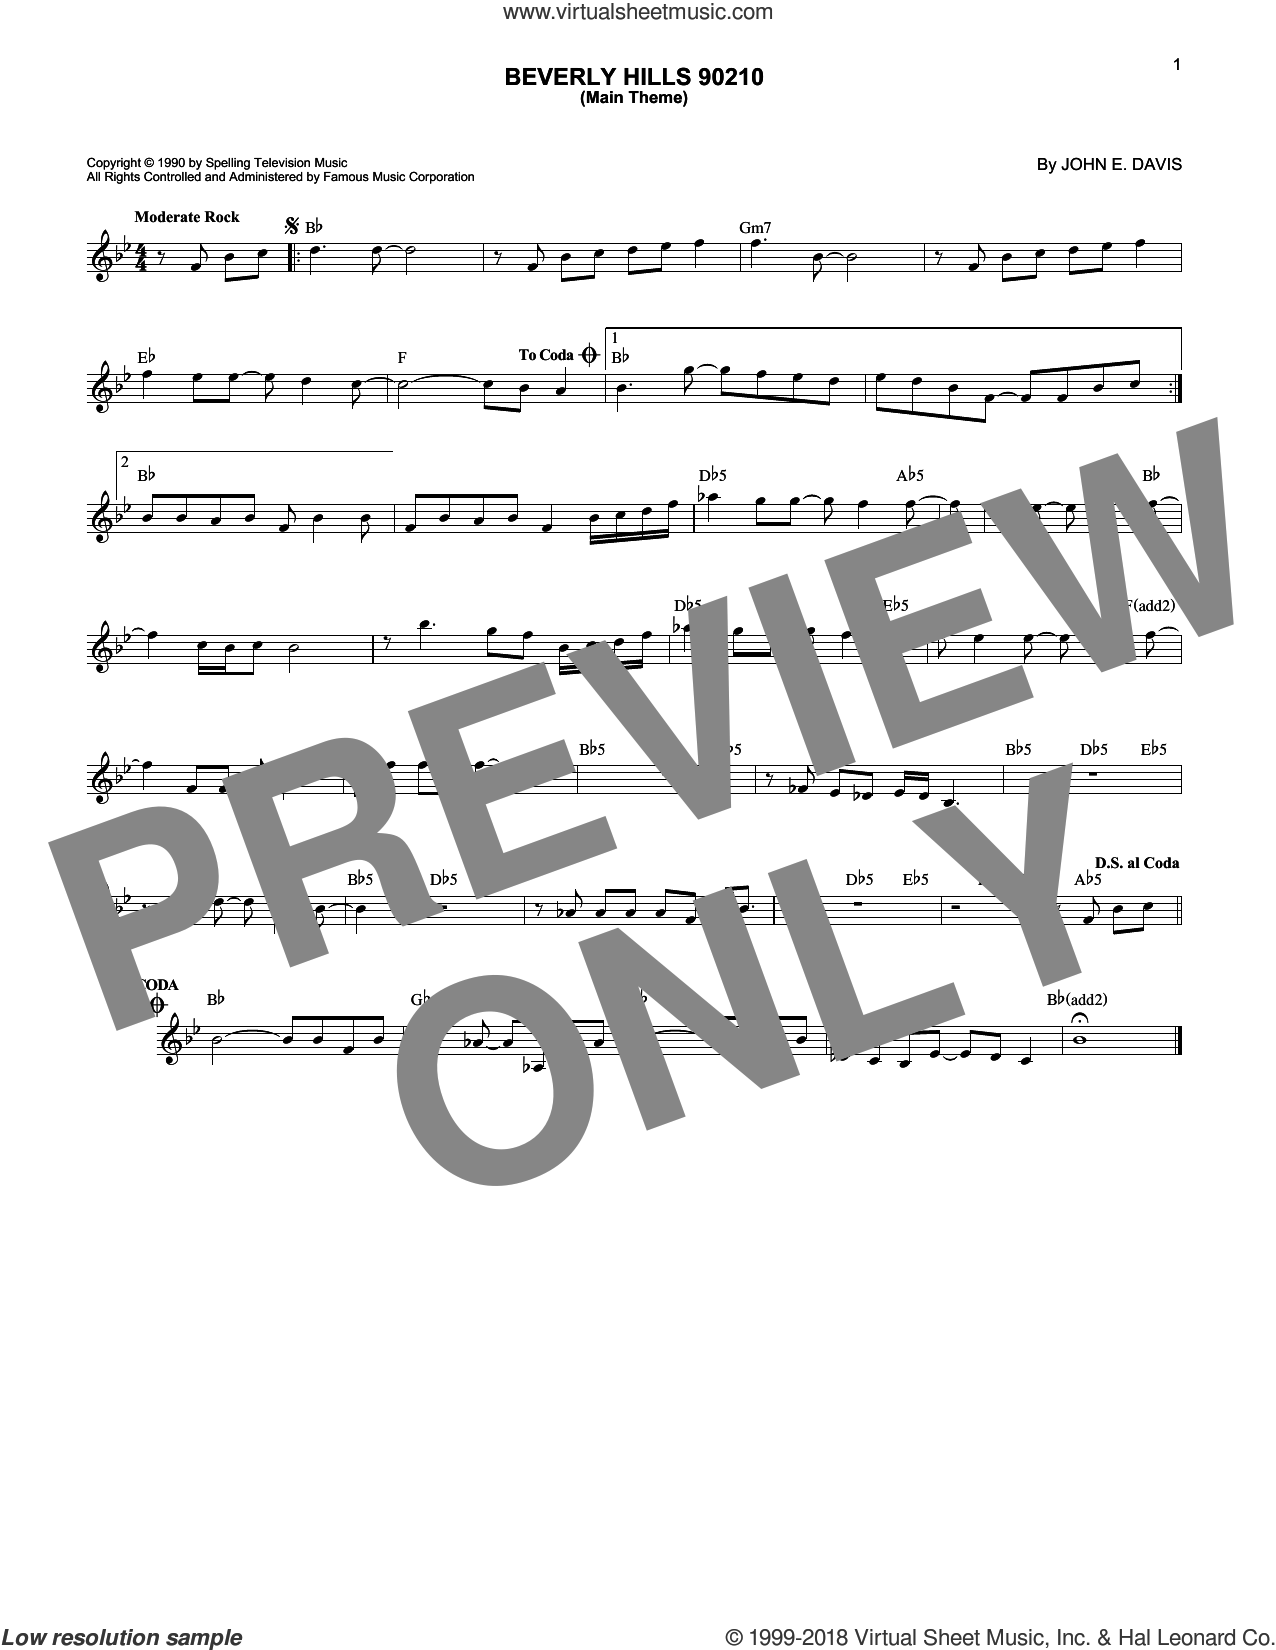 Beverly Hills 90210 (Main Theme) sheet music for voice and other instruments (fake book) by John E. Davis, intermediate skill level